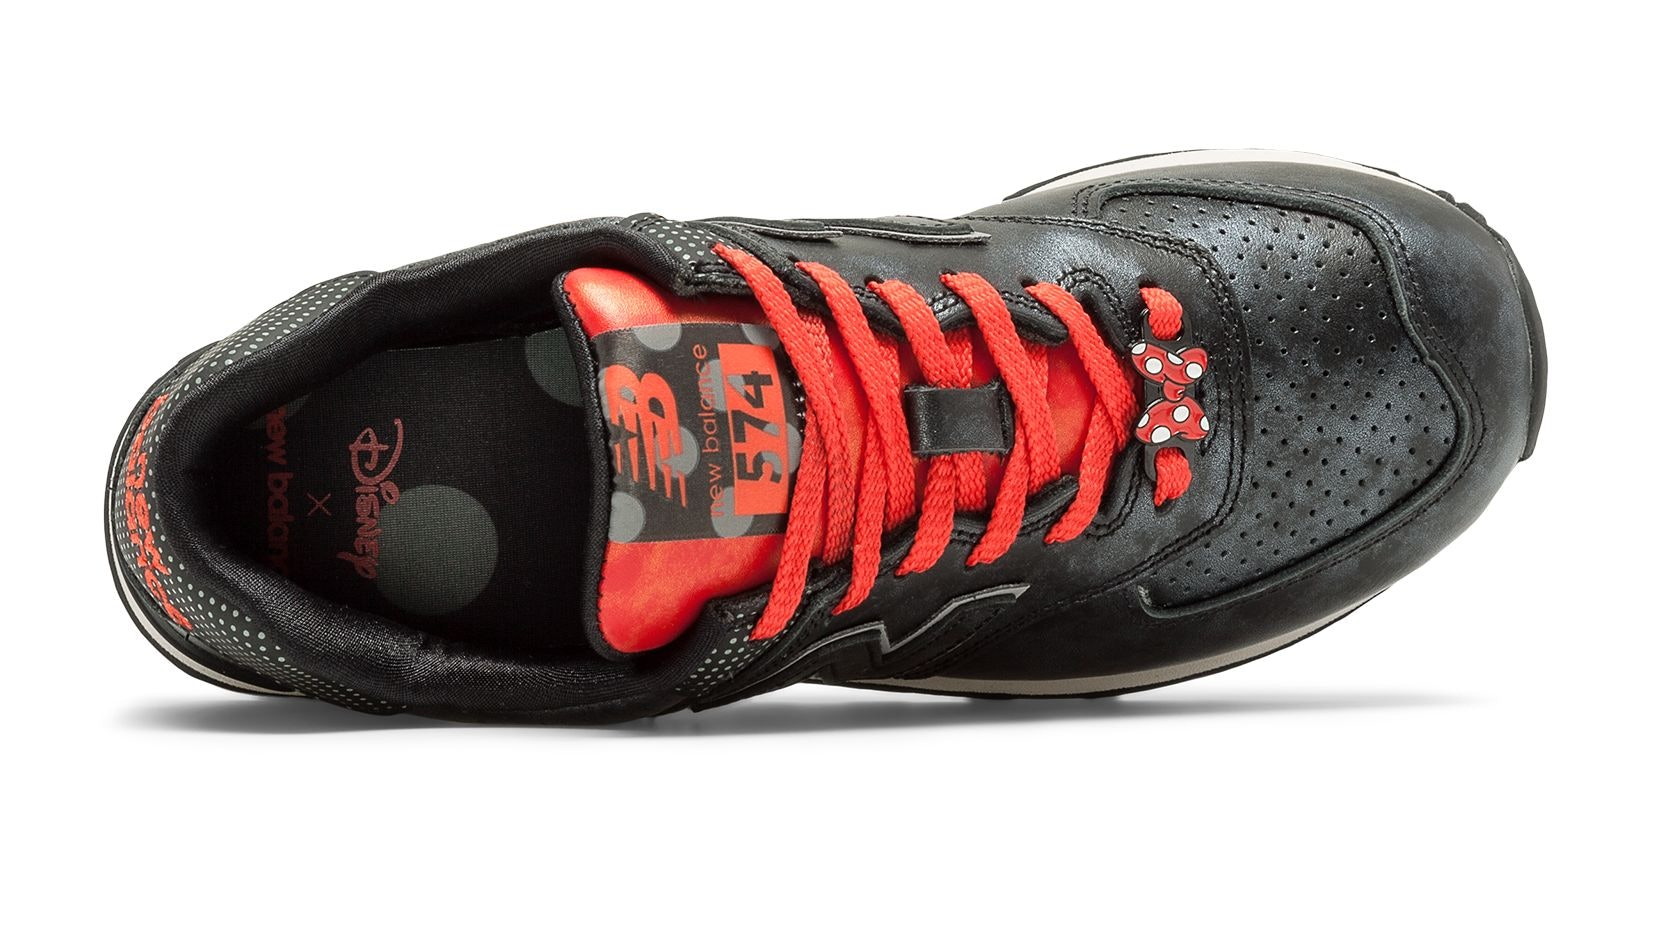 Minnie Mouse x New Balance Sneakers